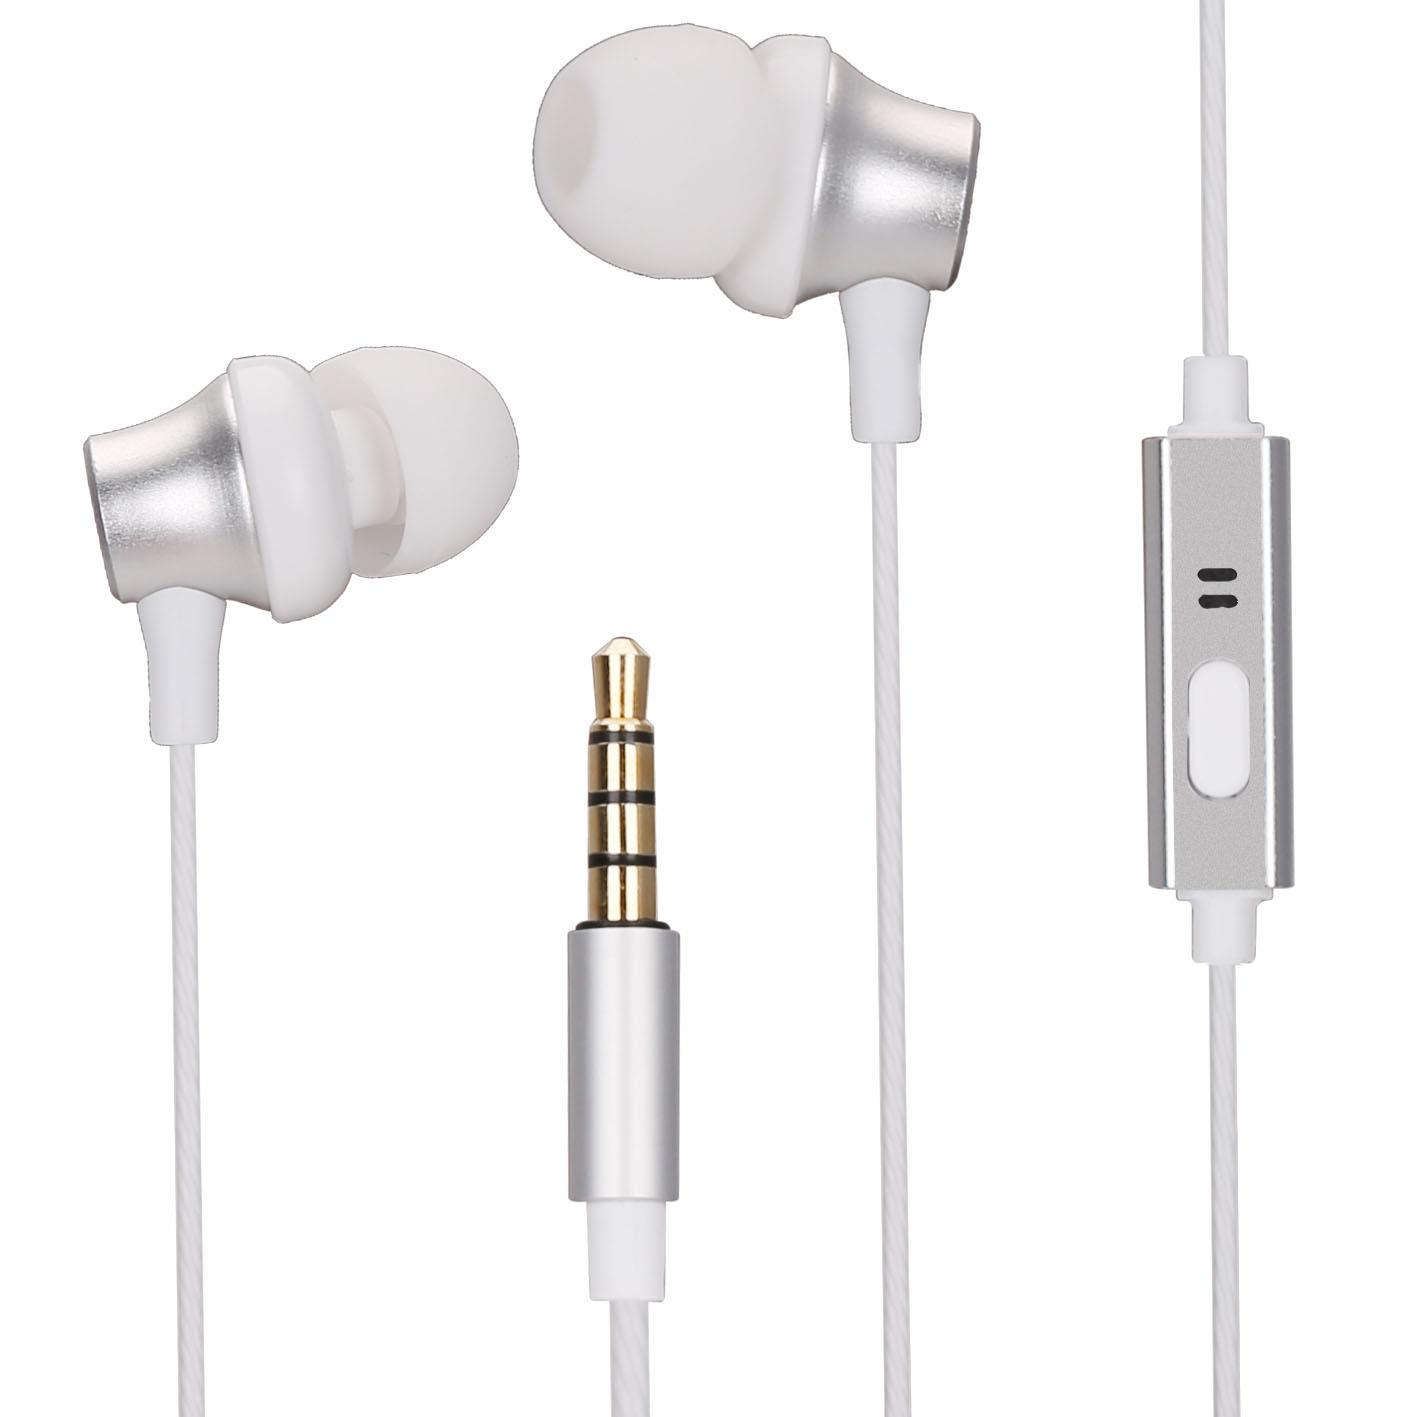 Sports Apple Earphones Android For Running In Line Control For All 3.5mm Jack